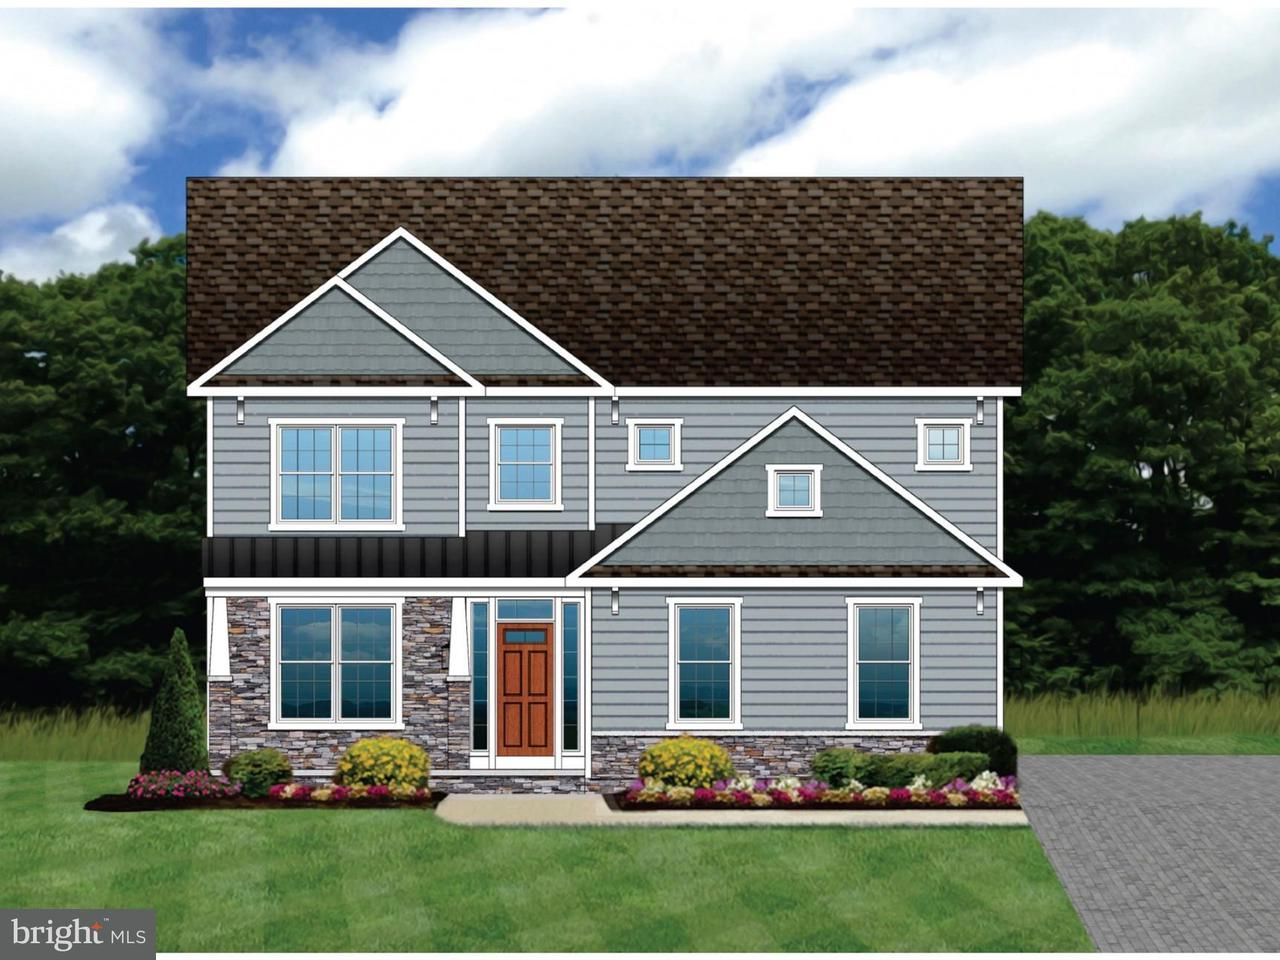 Single Family Home for Sale at 545 Fern Rd #Lot 2 545 Fern Rd #Lot 2 Riva, Maryland 21140 United States